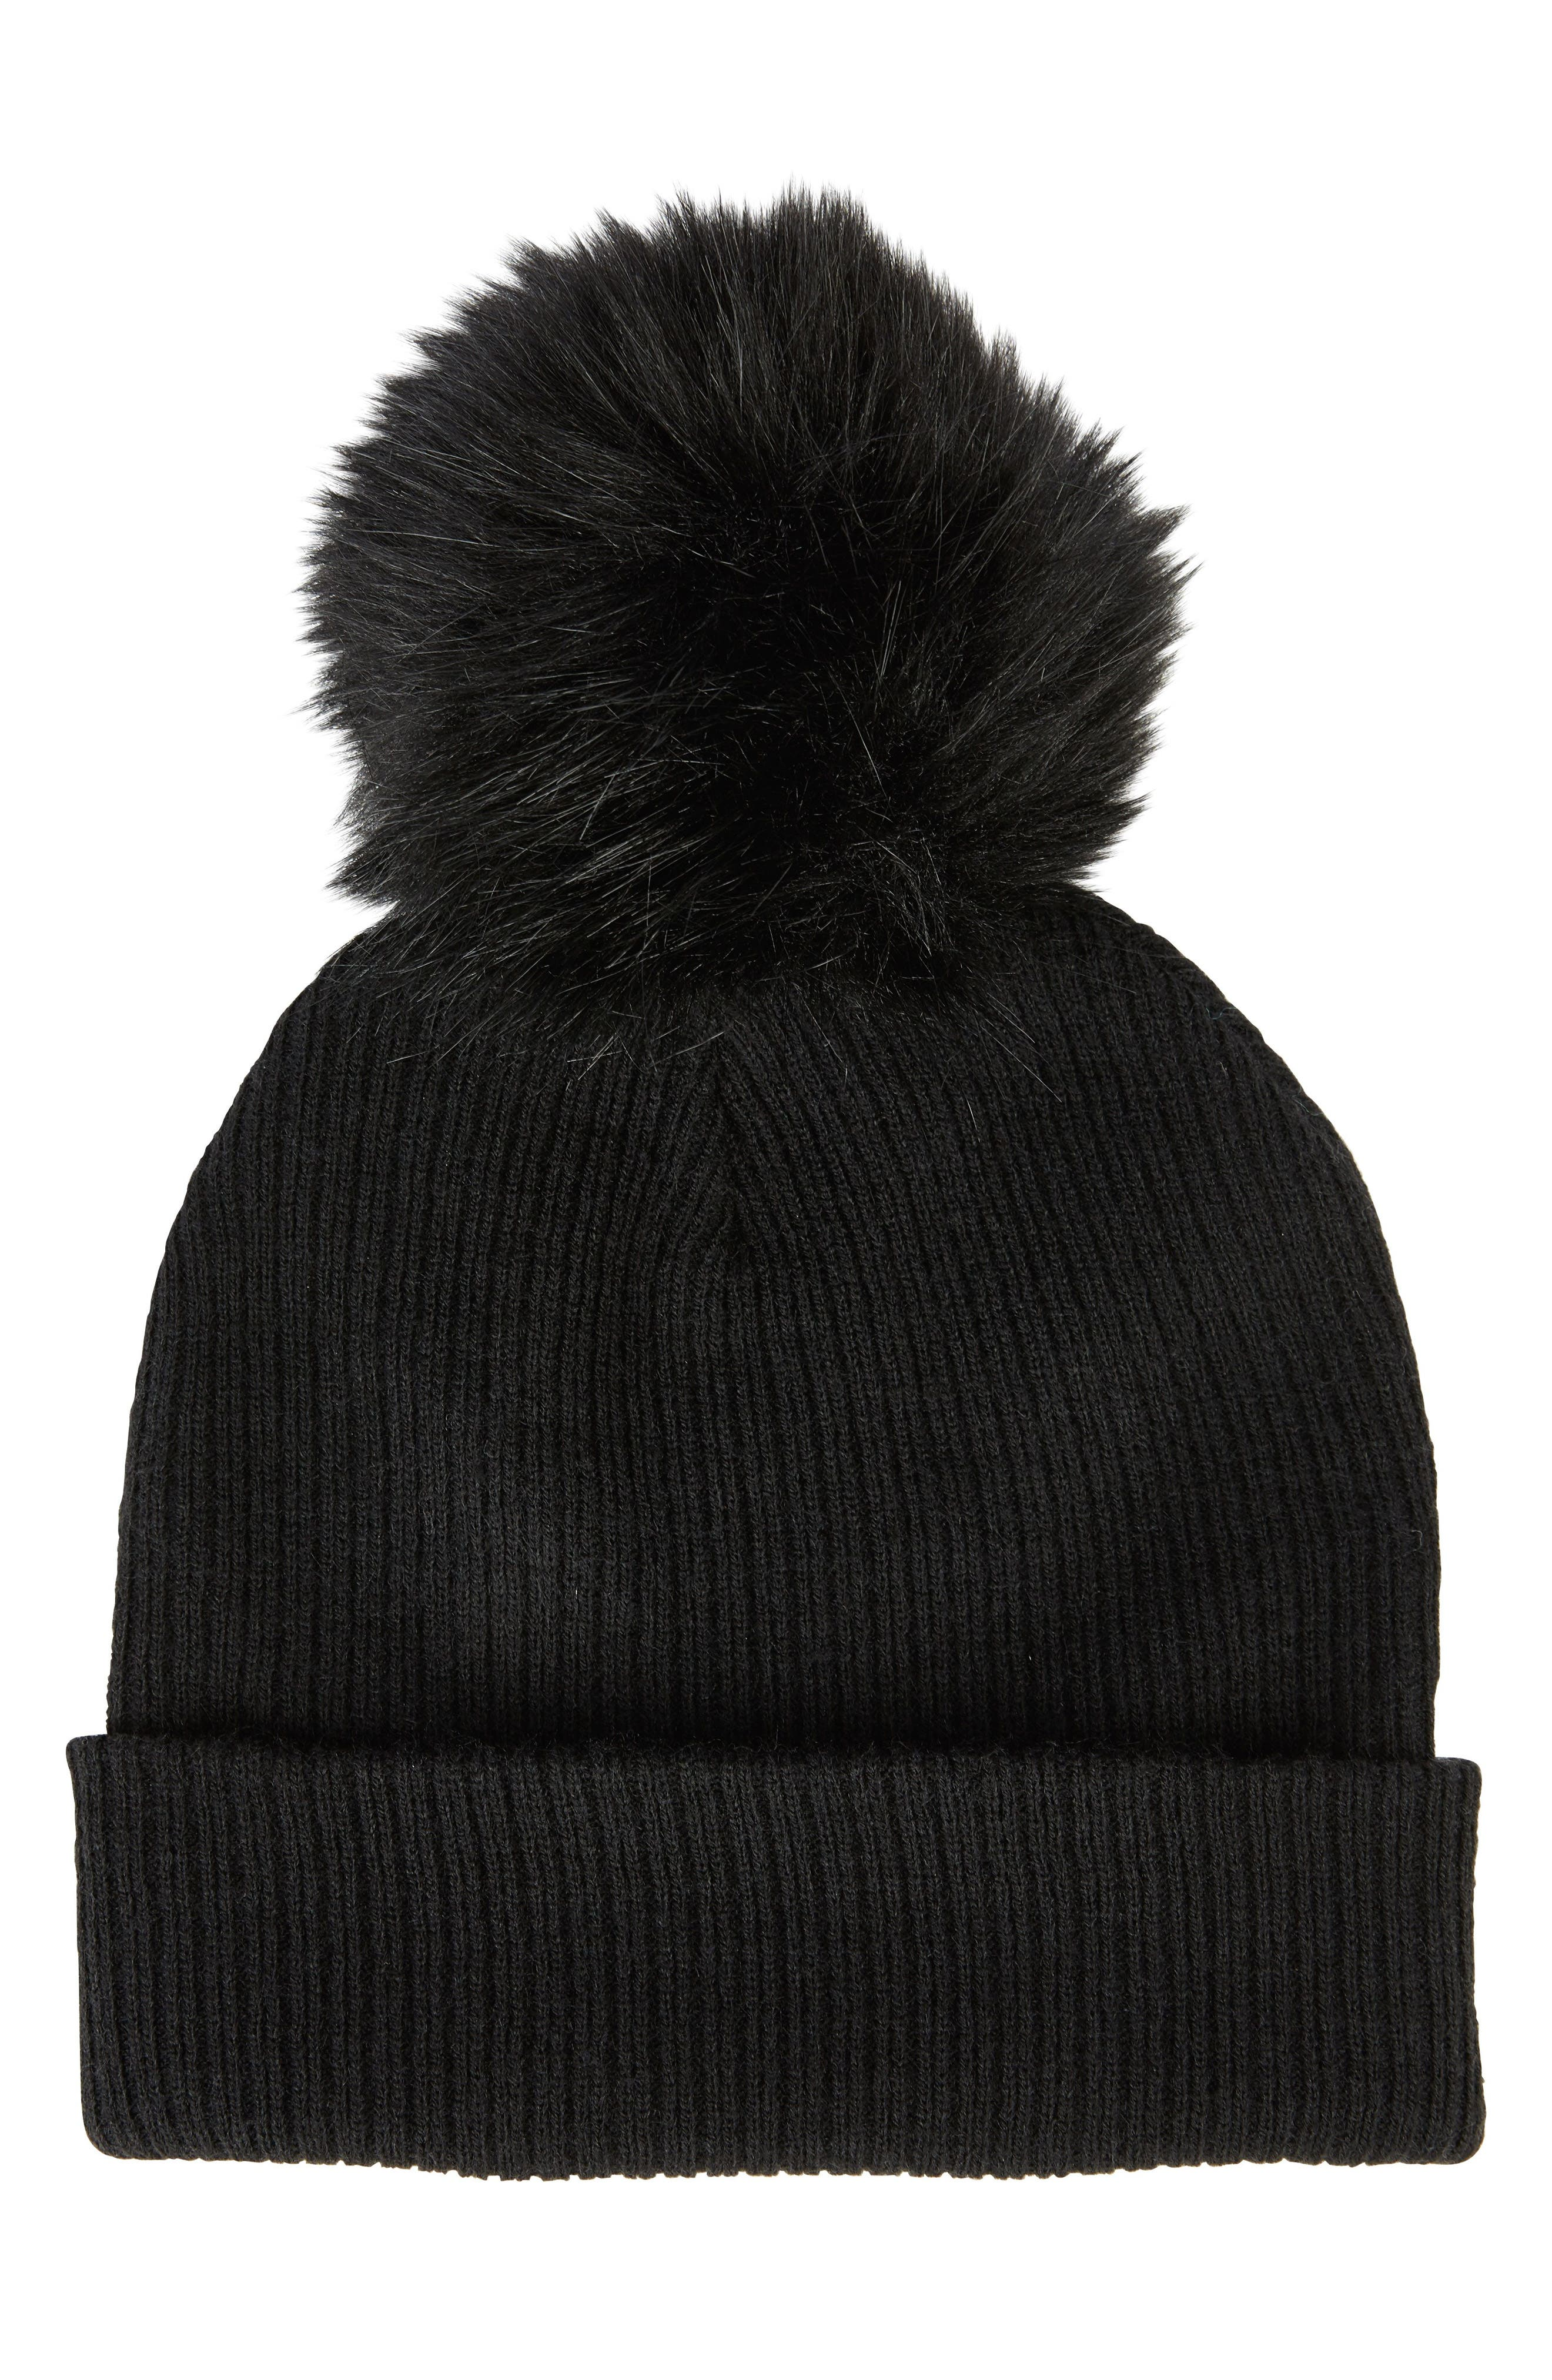 SOLE SOCIETY Faux Fur Pompom Beanie, Main, color, 001